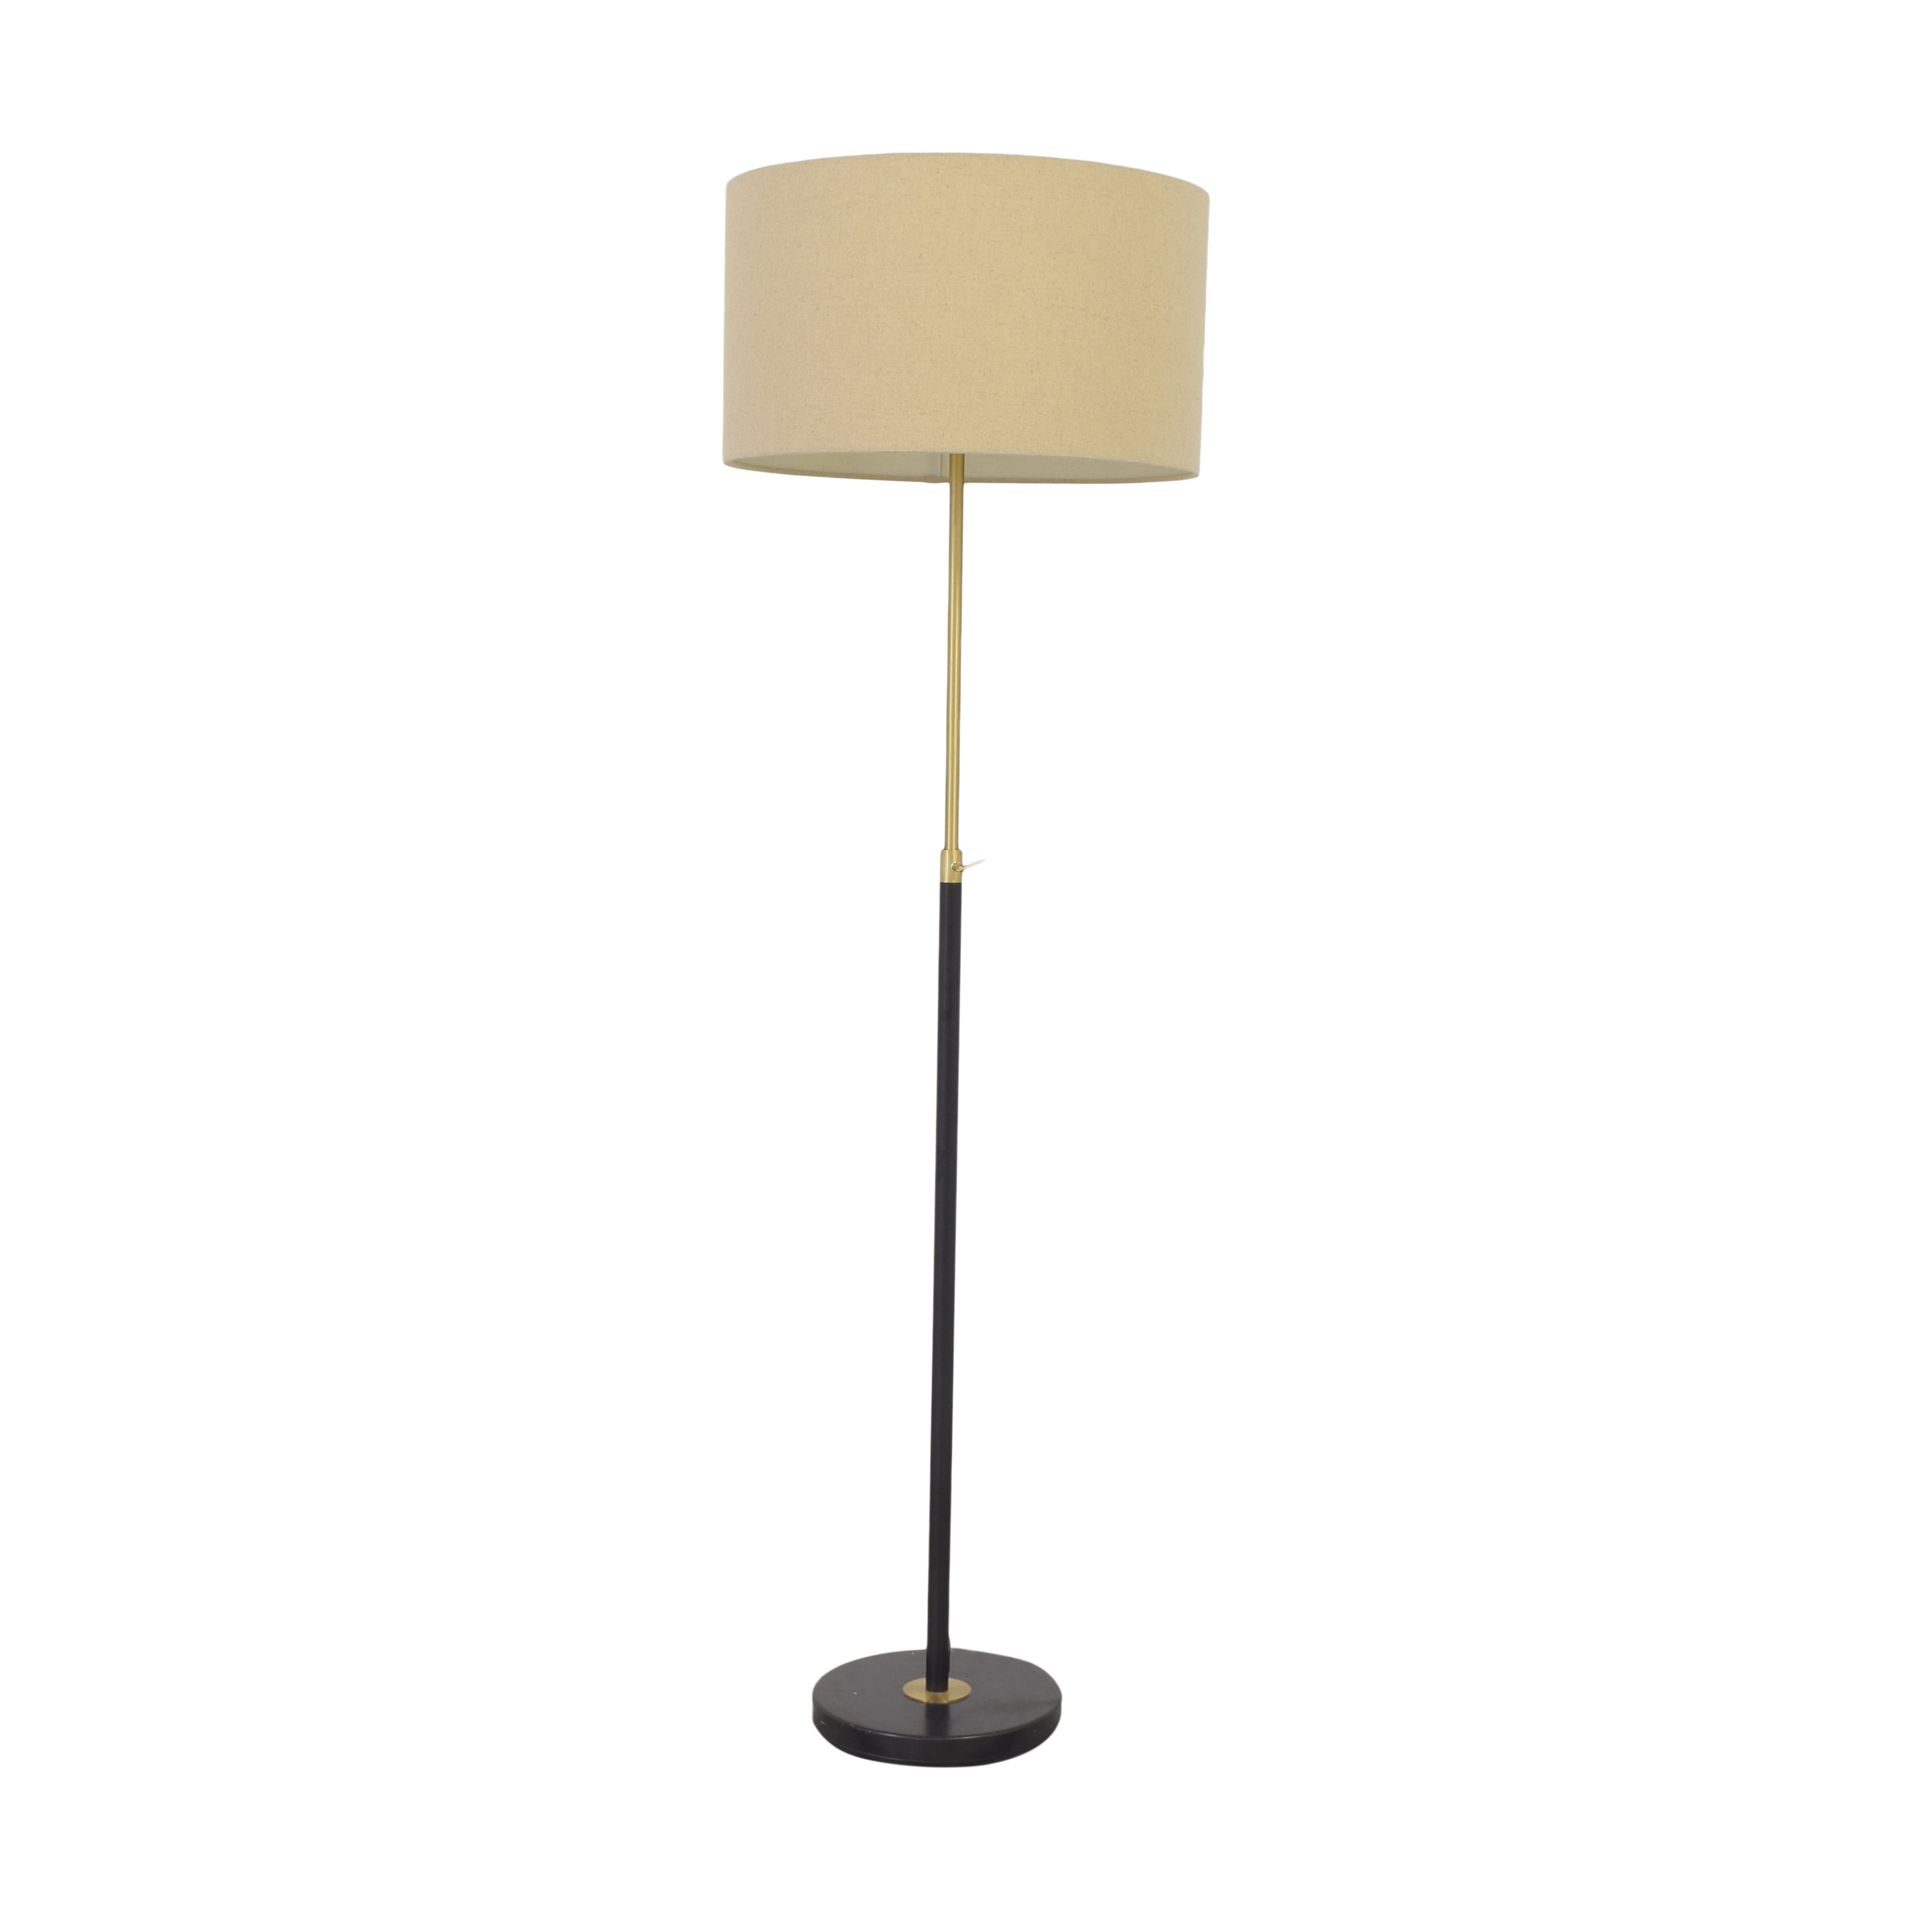 West Elm West Elm Telescoping Adjustable Floor Lamp ma